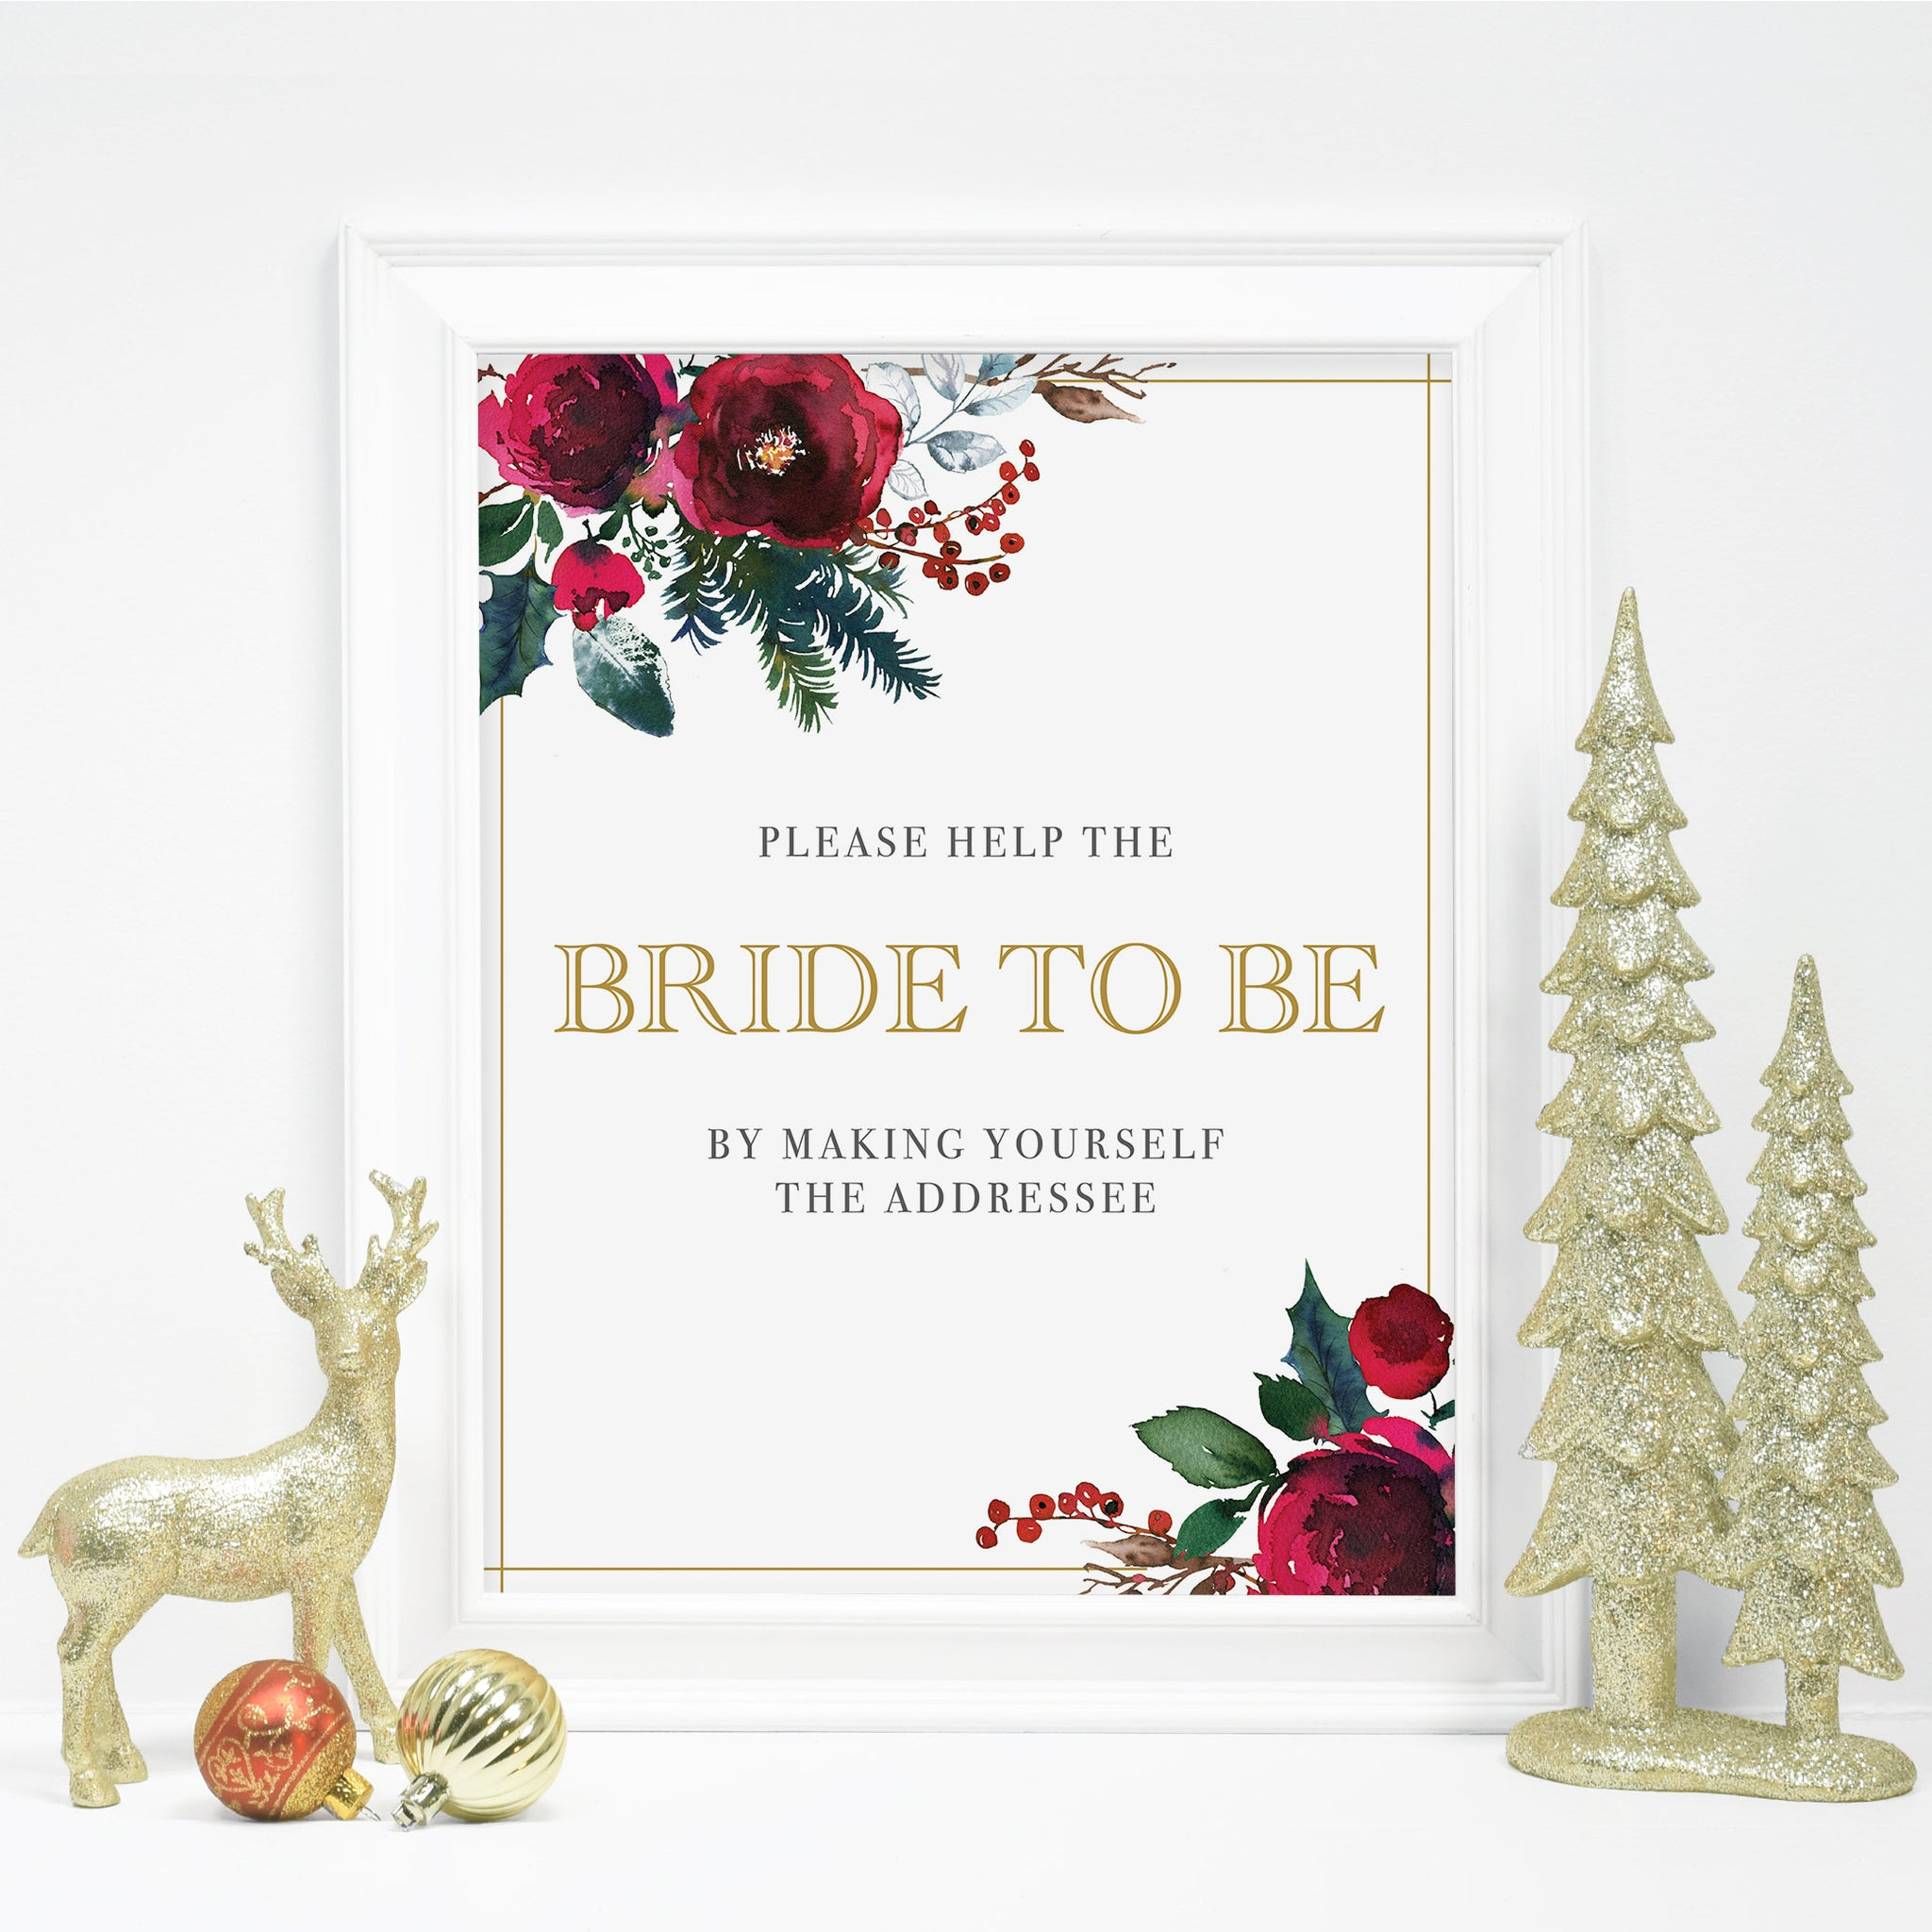 Christmas Bridal Shower Addressee Sign Printable, Address an Envelope Sign, Winter Bridal Shower Decorations, INSTANT DOWNLOAD - CG100